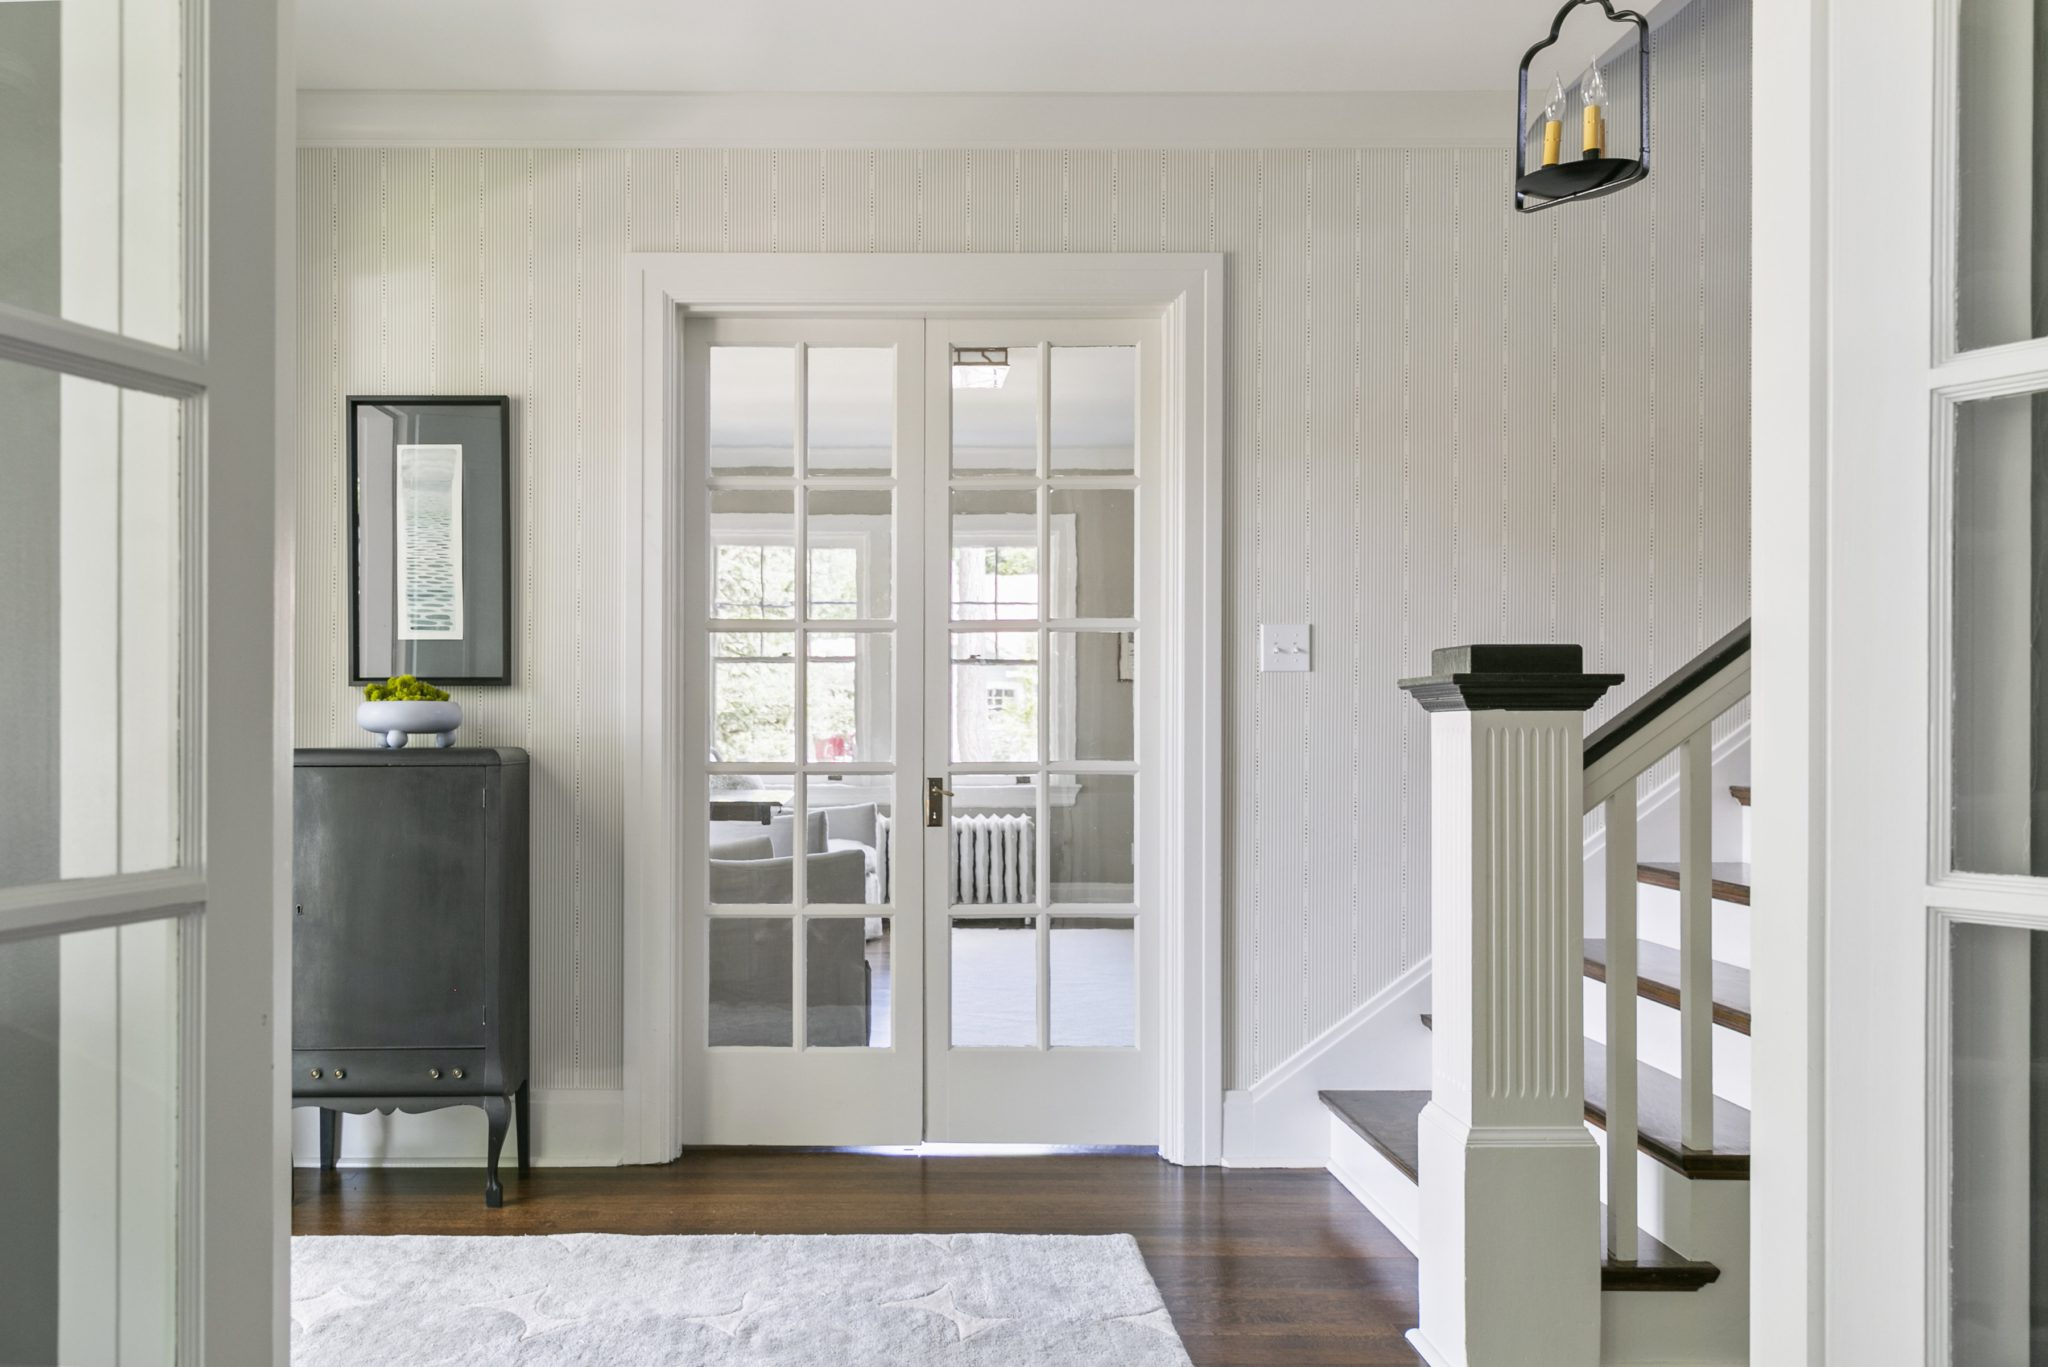 North End Boise entry foyer with metal candle pendant and vintage black cabinet by Maren Baker Design